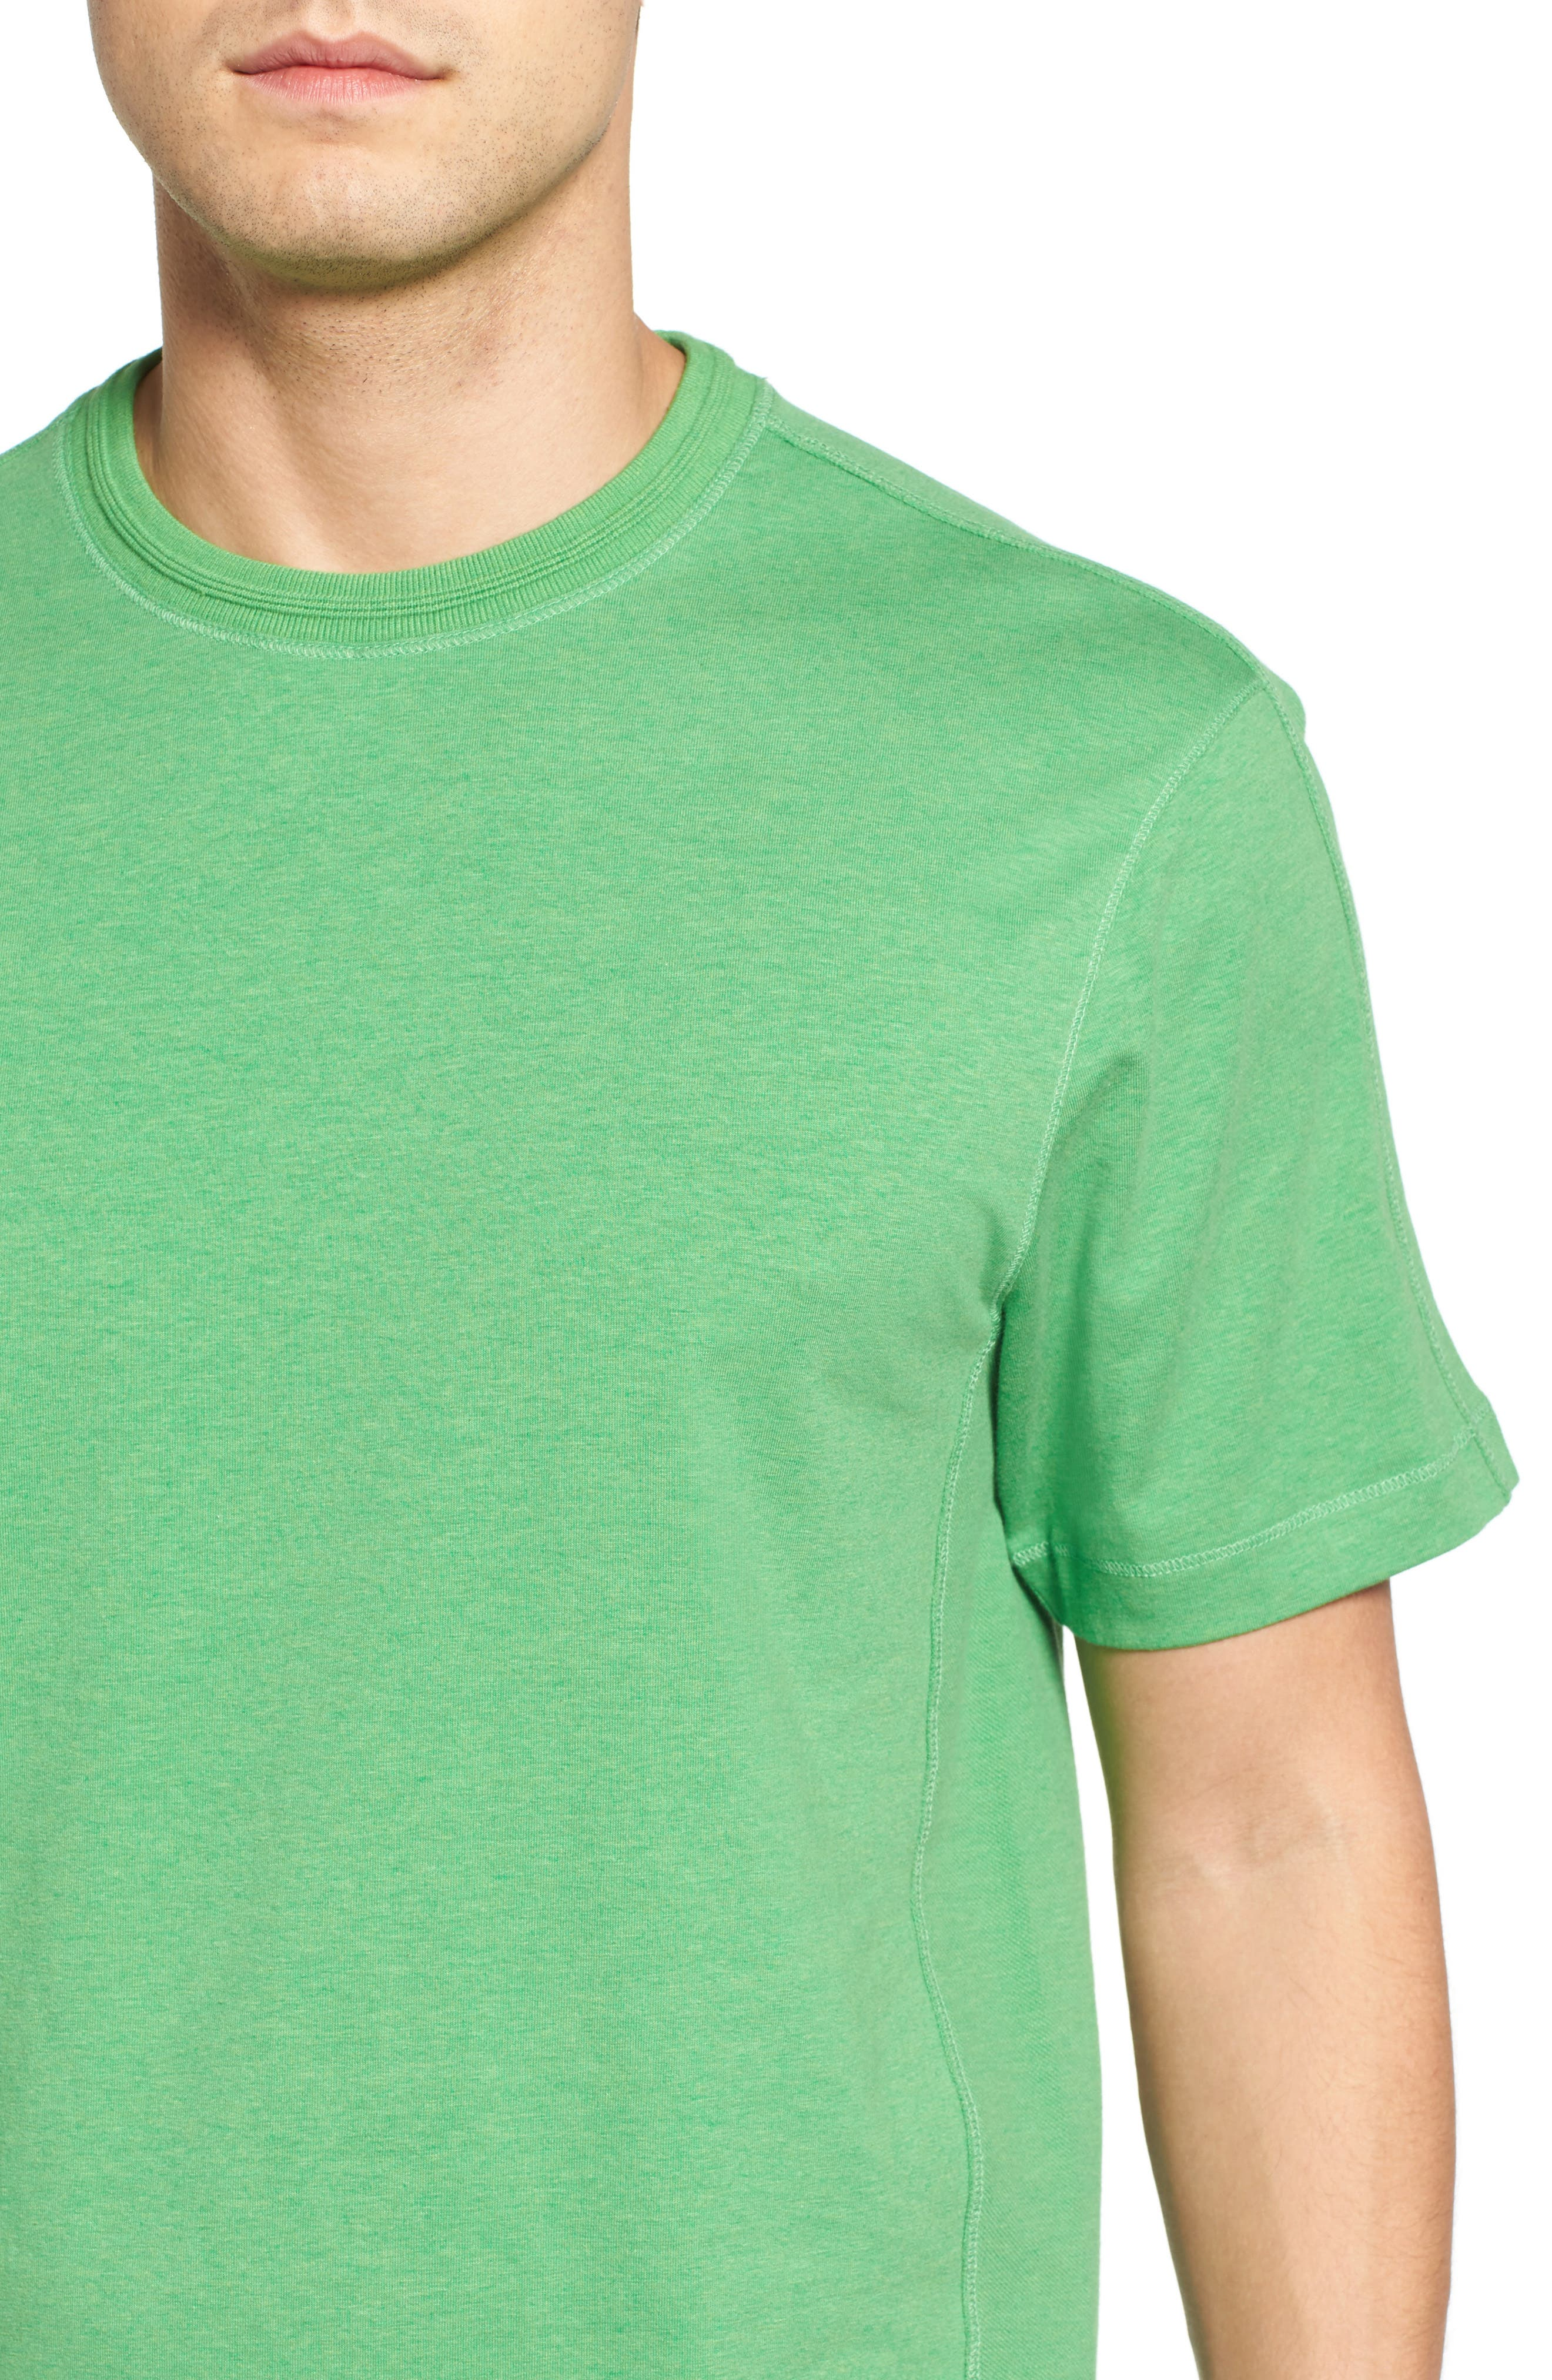 Steve Stretch Jersey T-Shirt,                             Alternate thumbnail 15, color,